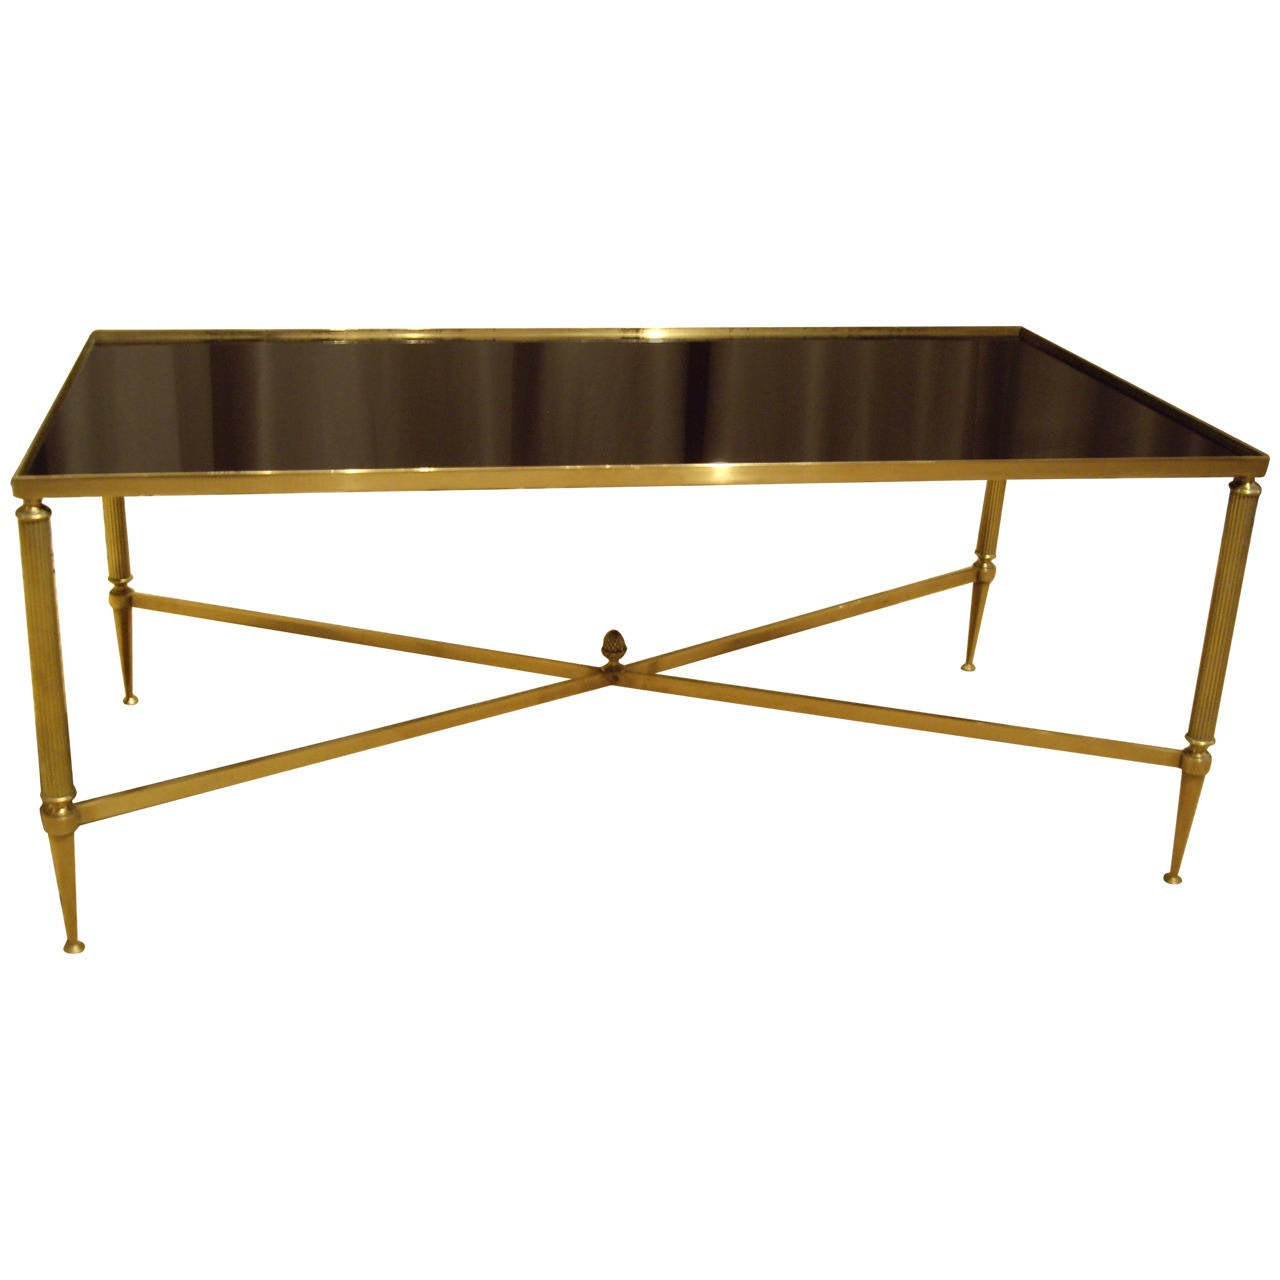 Vintage french brass and glass coffee table at 1stdibs Antique brass coffee table